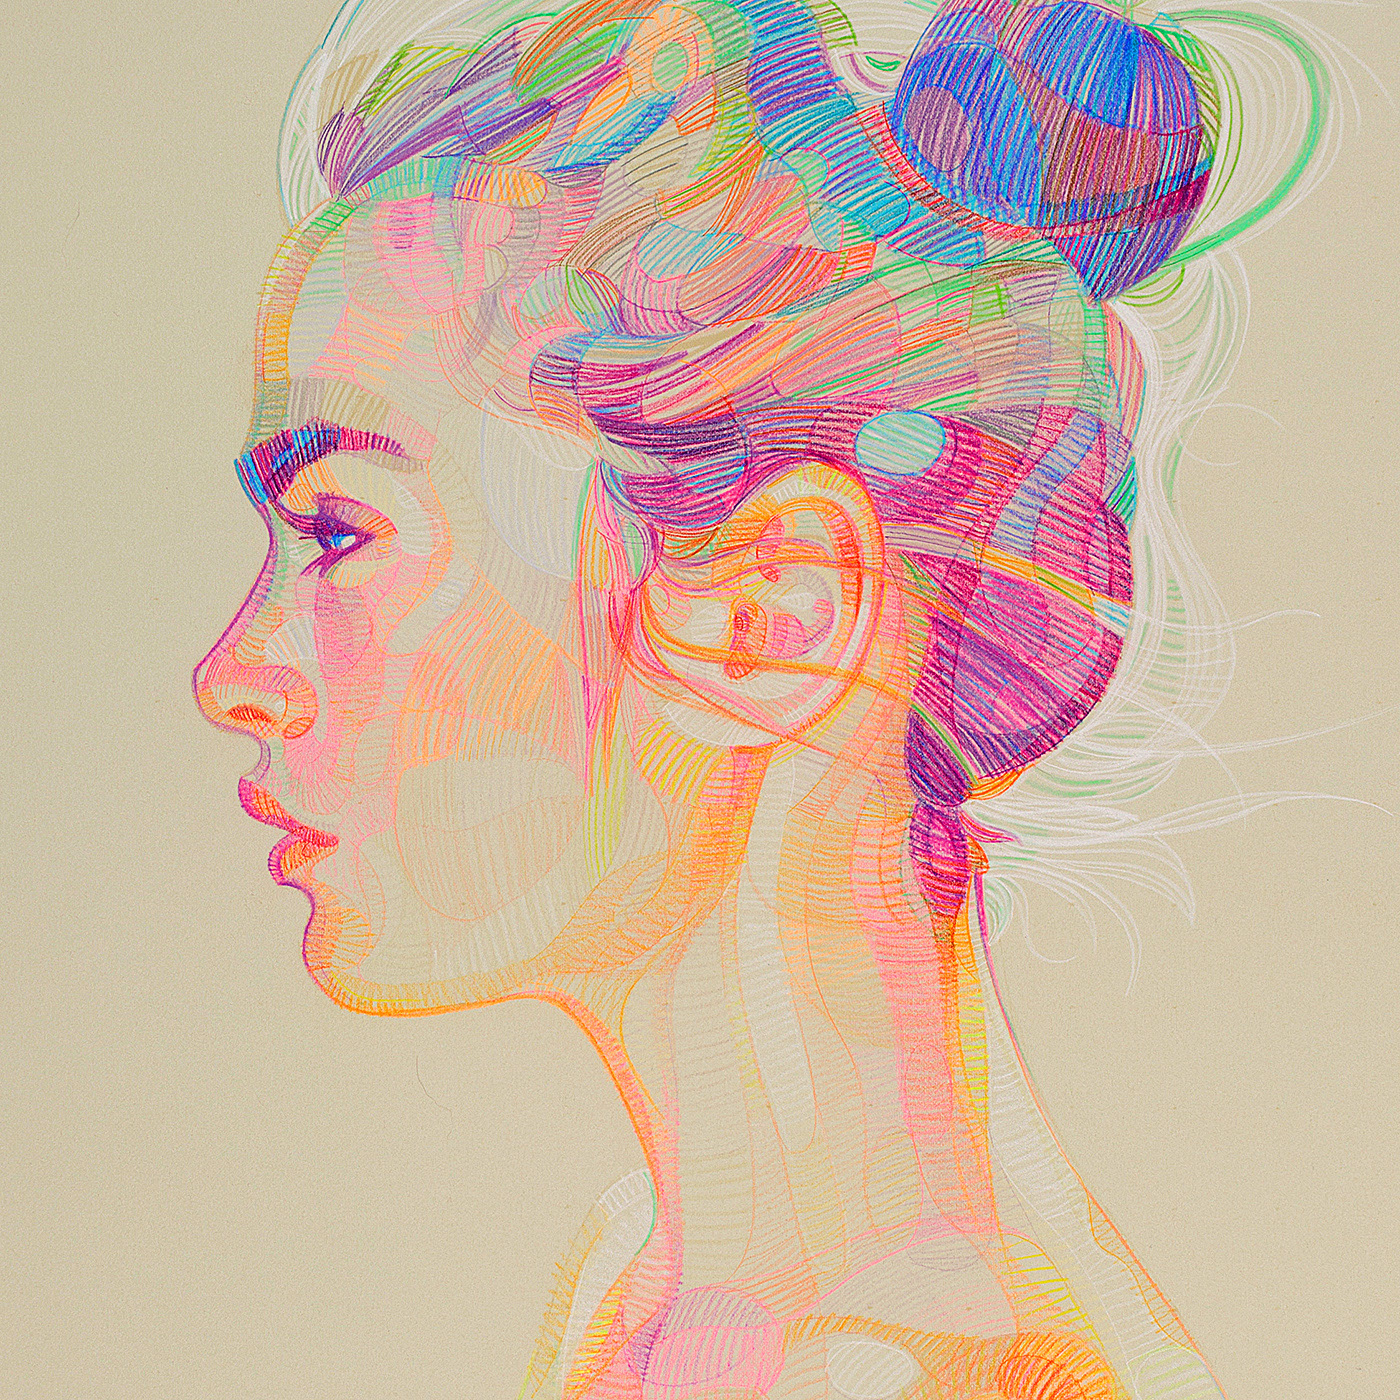 Linear Thinking Series: Colored Pencil Illustrations